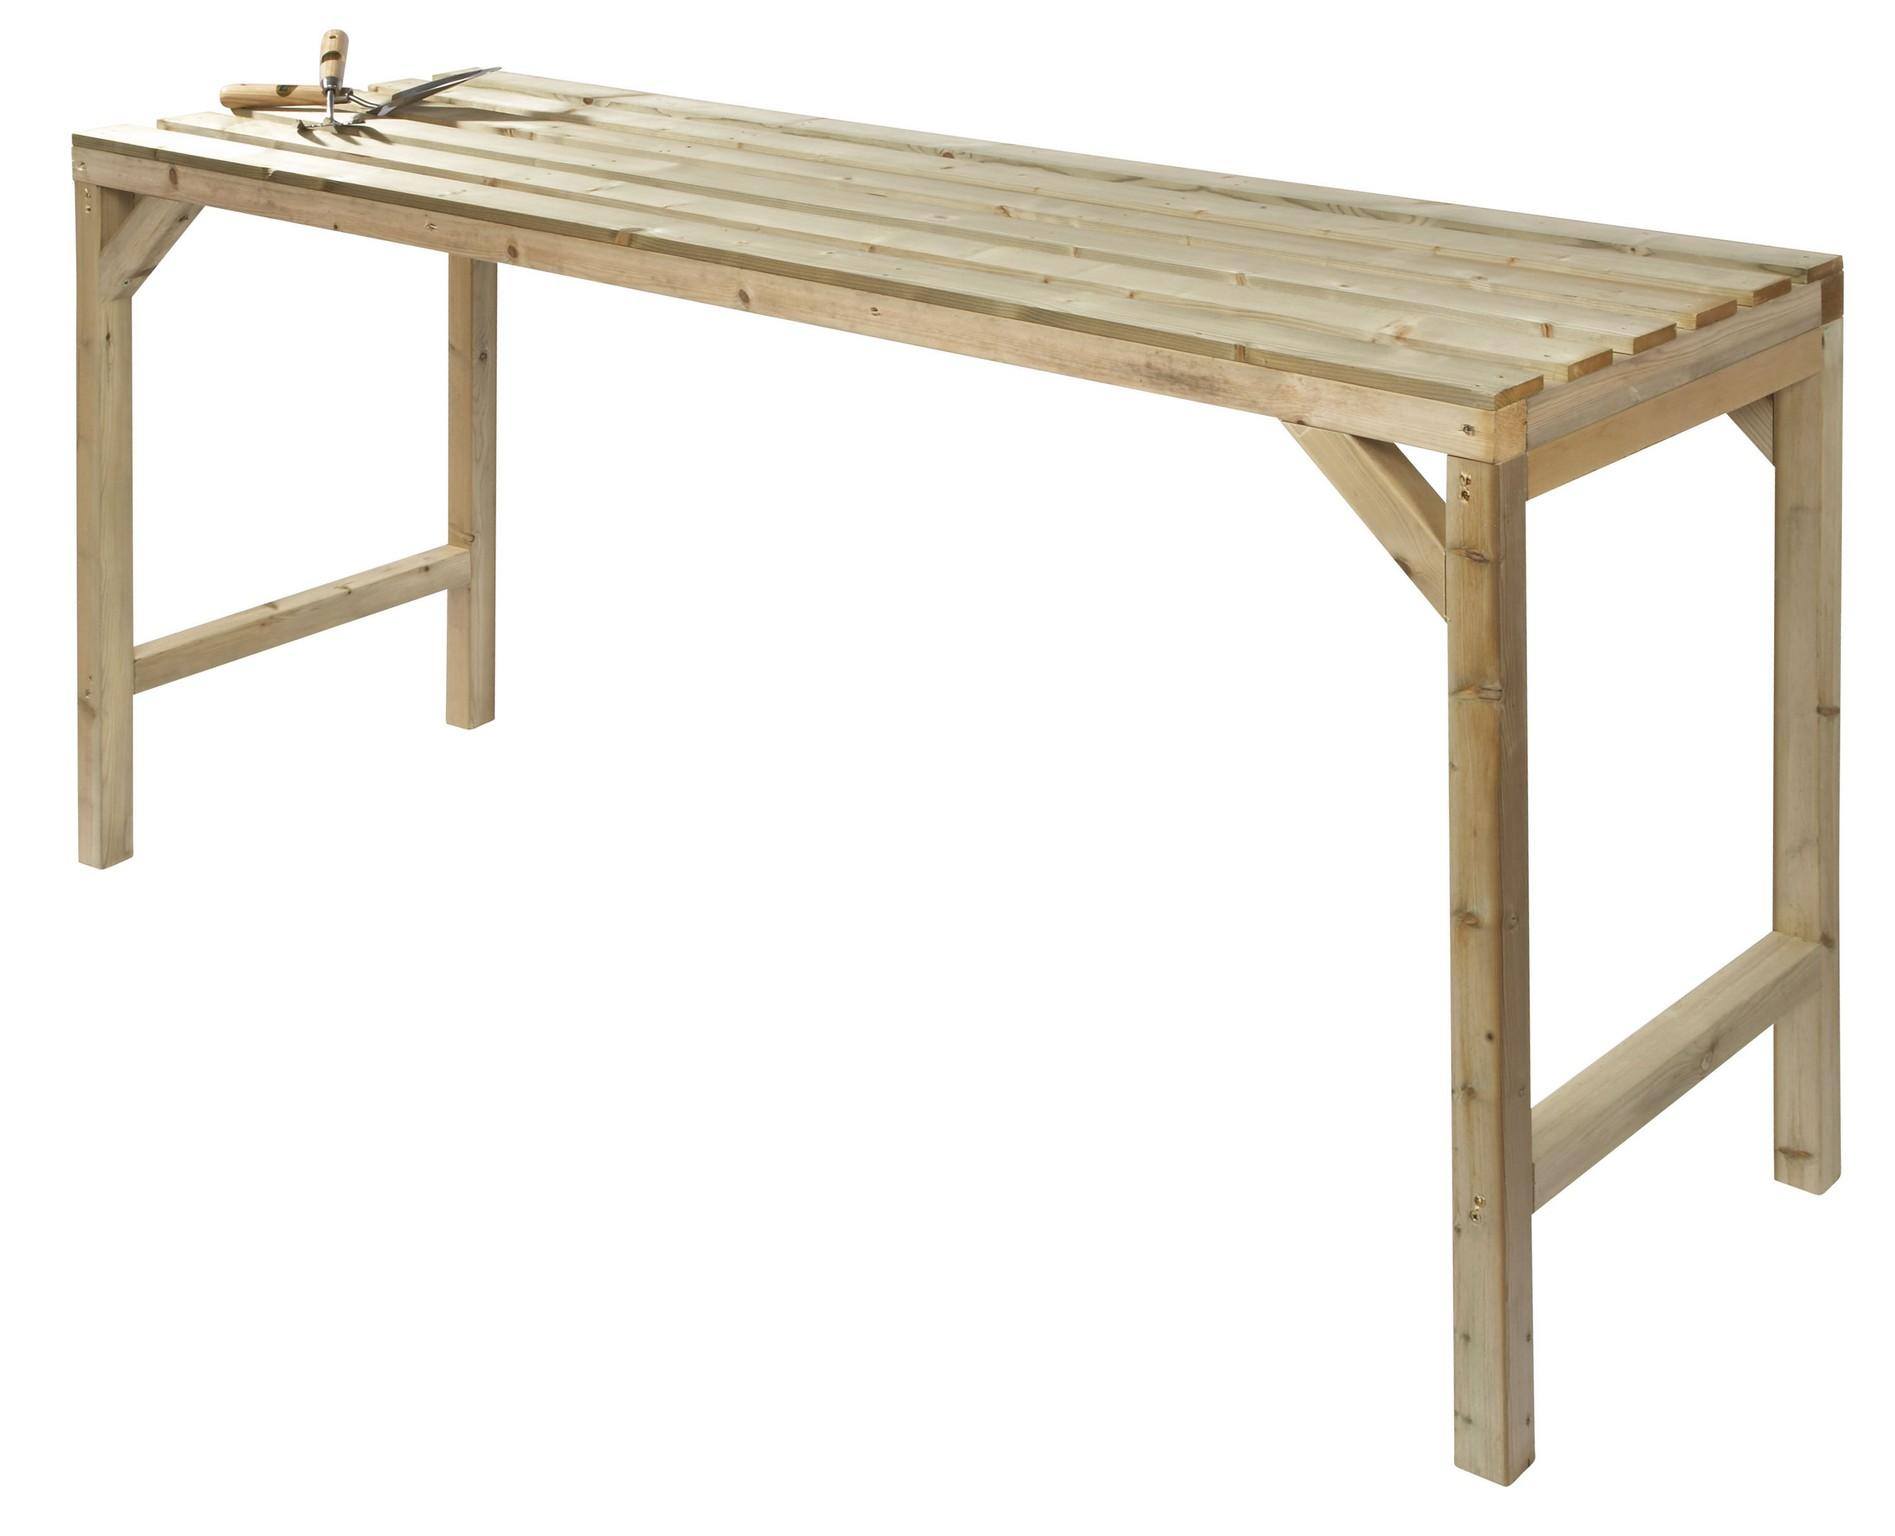 wooden bench with shelf kashiori how to make wooden bed frame 100 hand painted bench d d u0027s